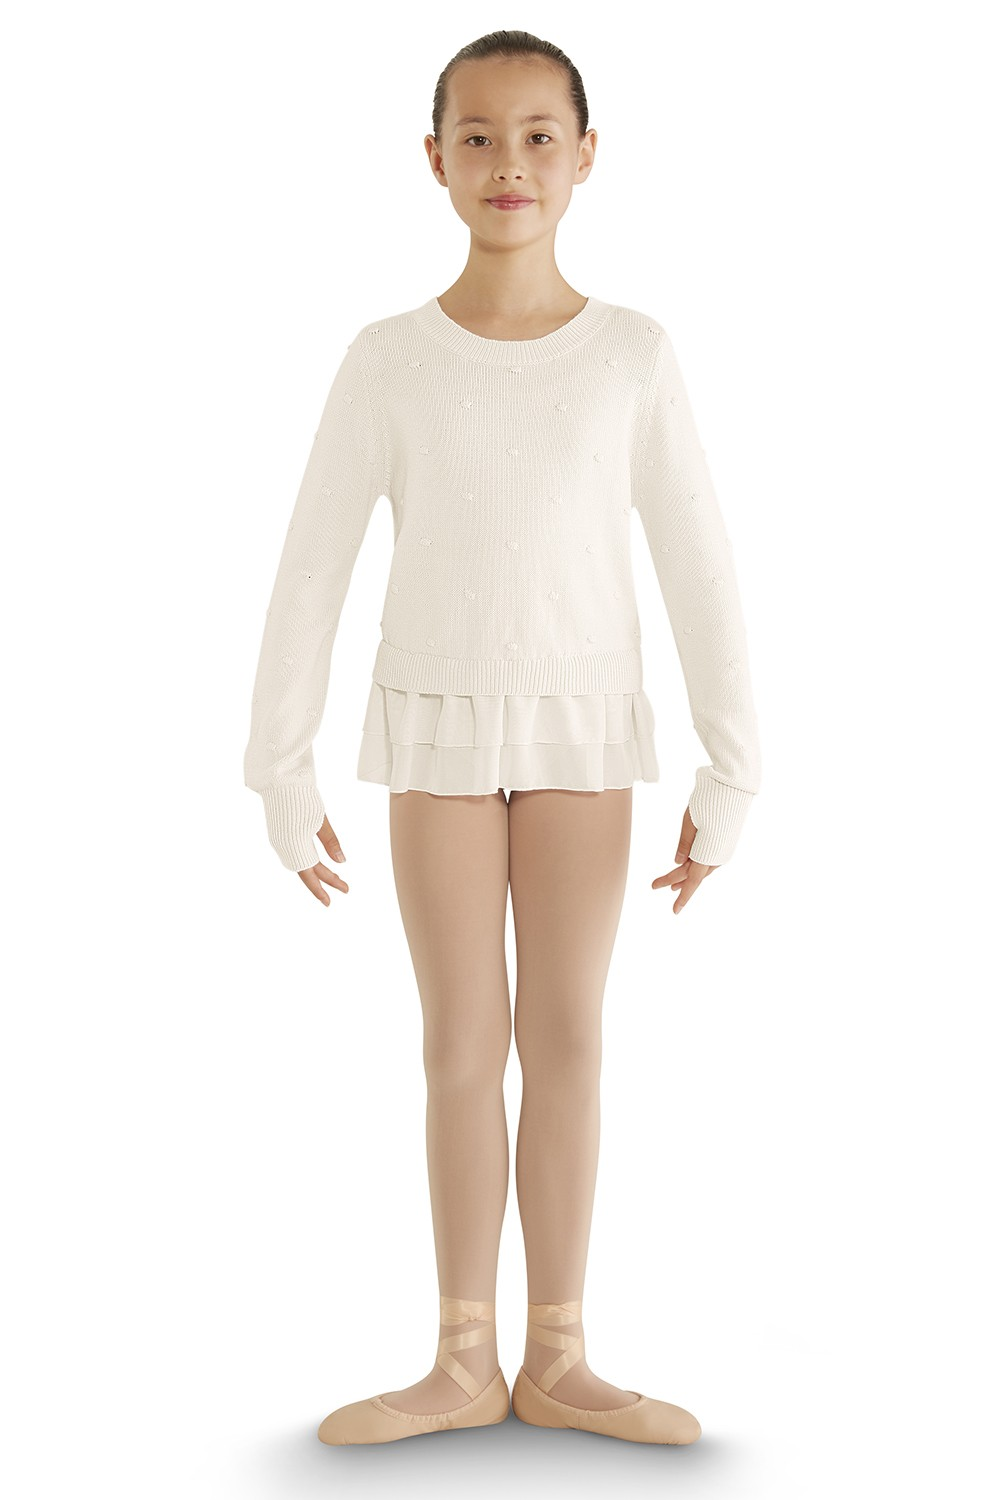 Bubble Knit Long Sleeve Sweater Children's Dance Tops